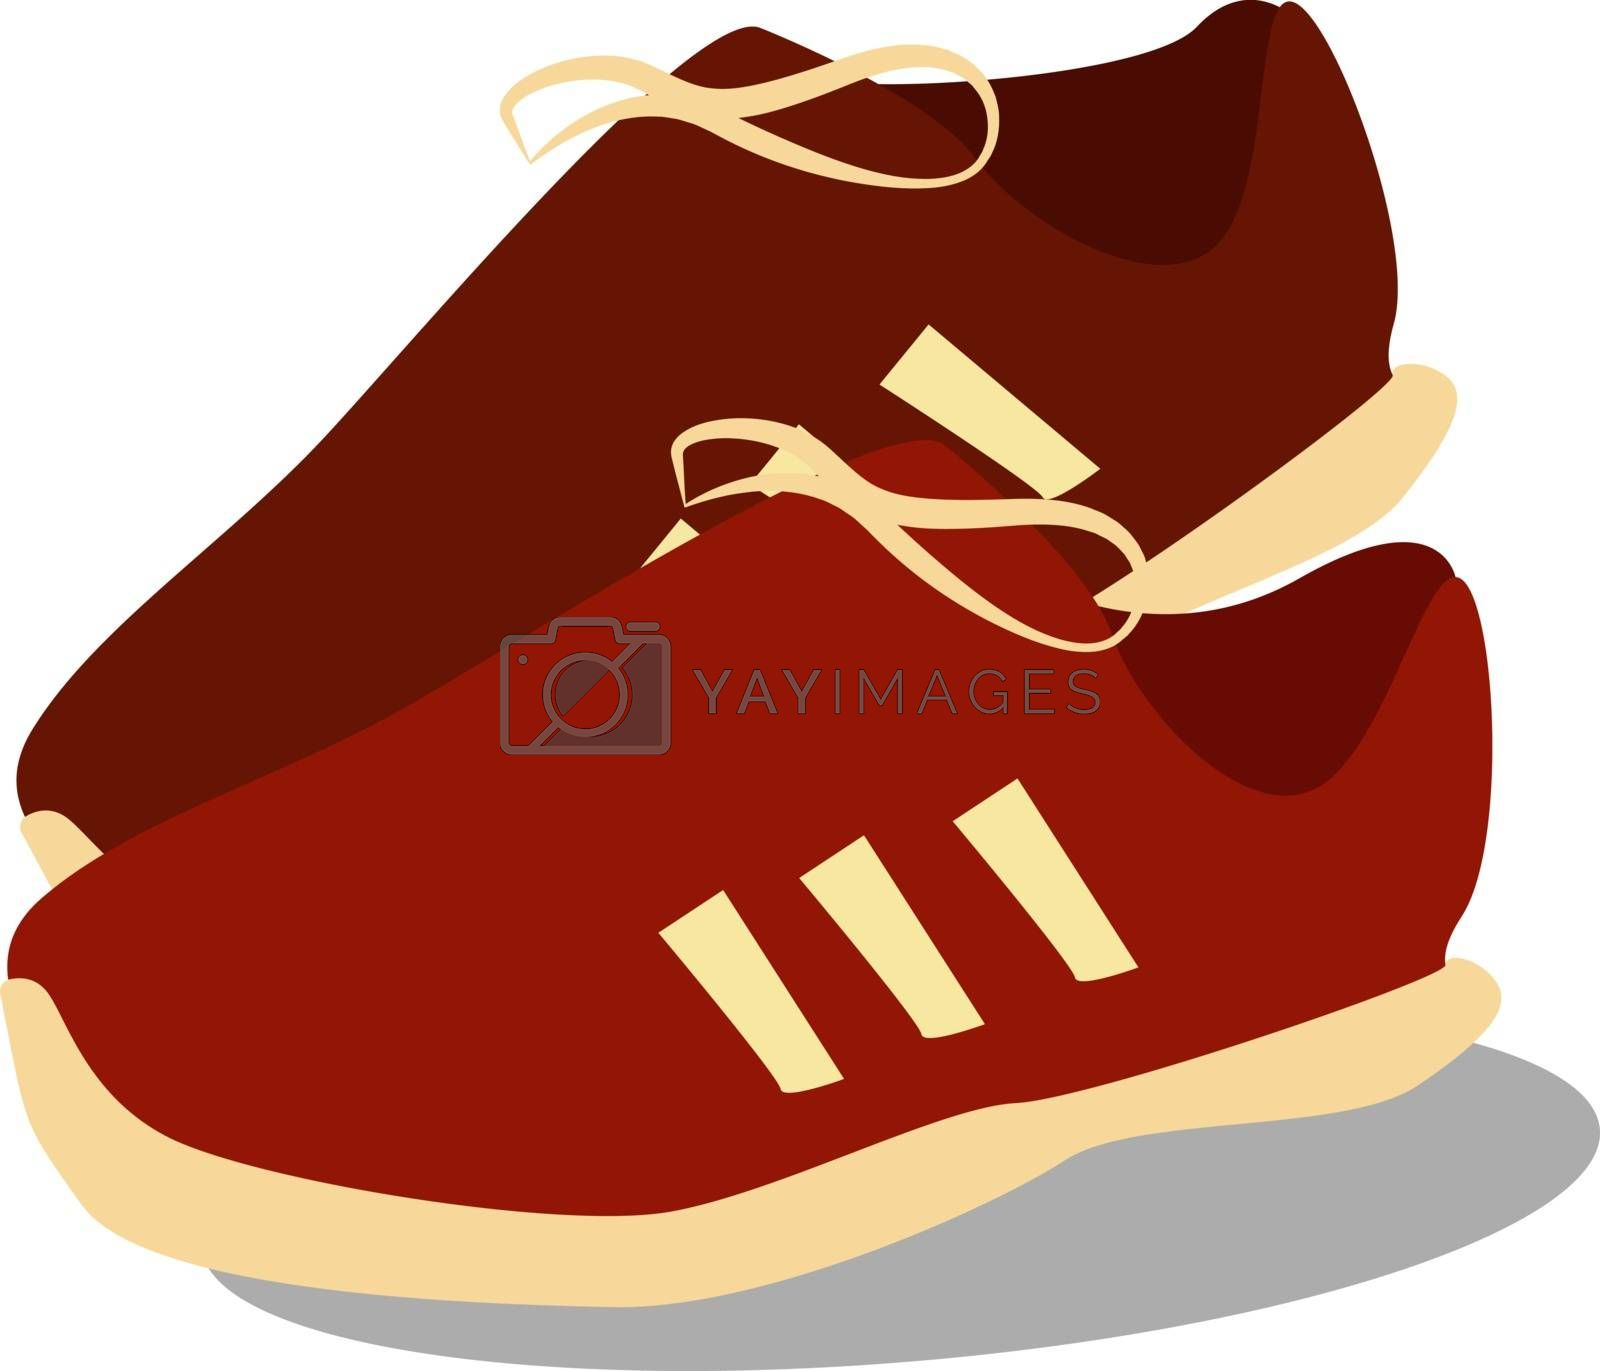 Red boots, illustration, vector on white background.